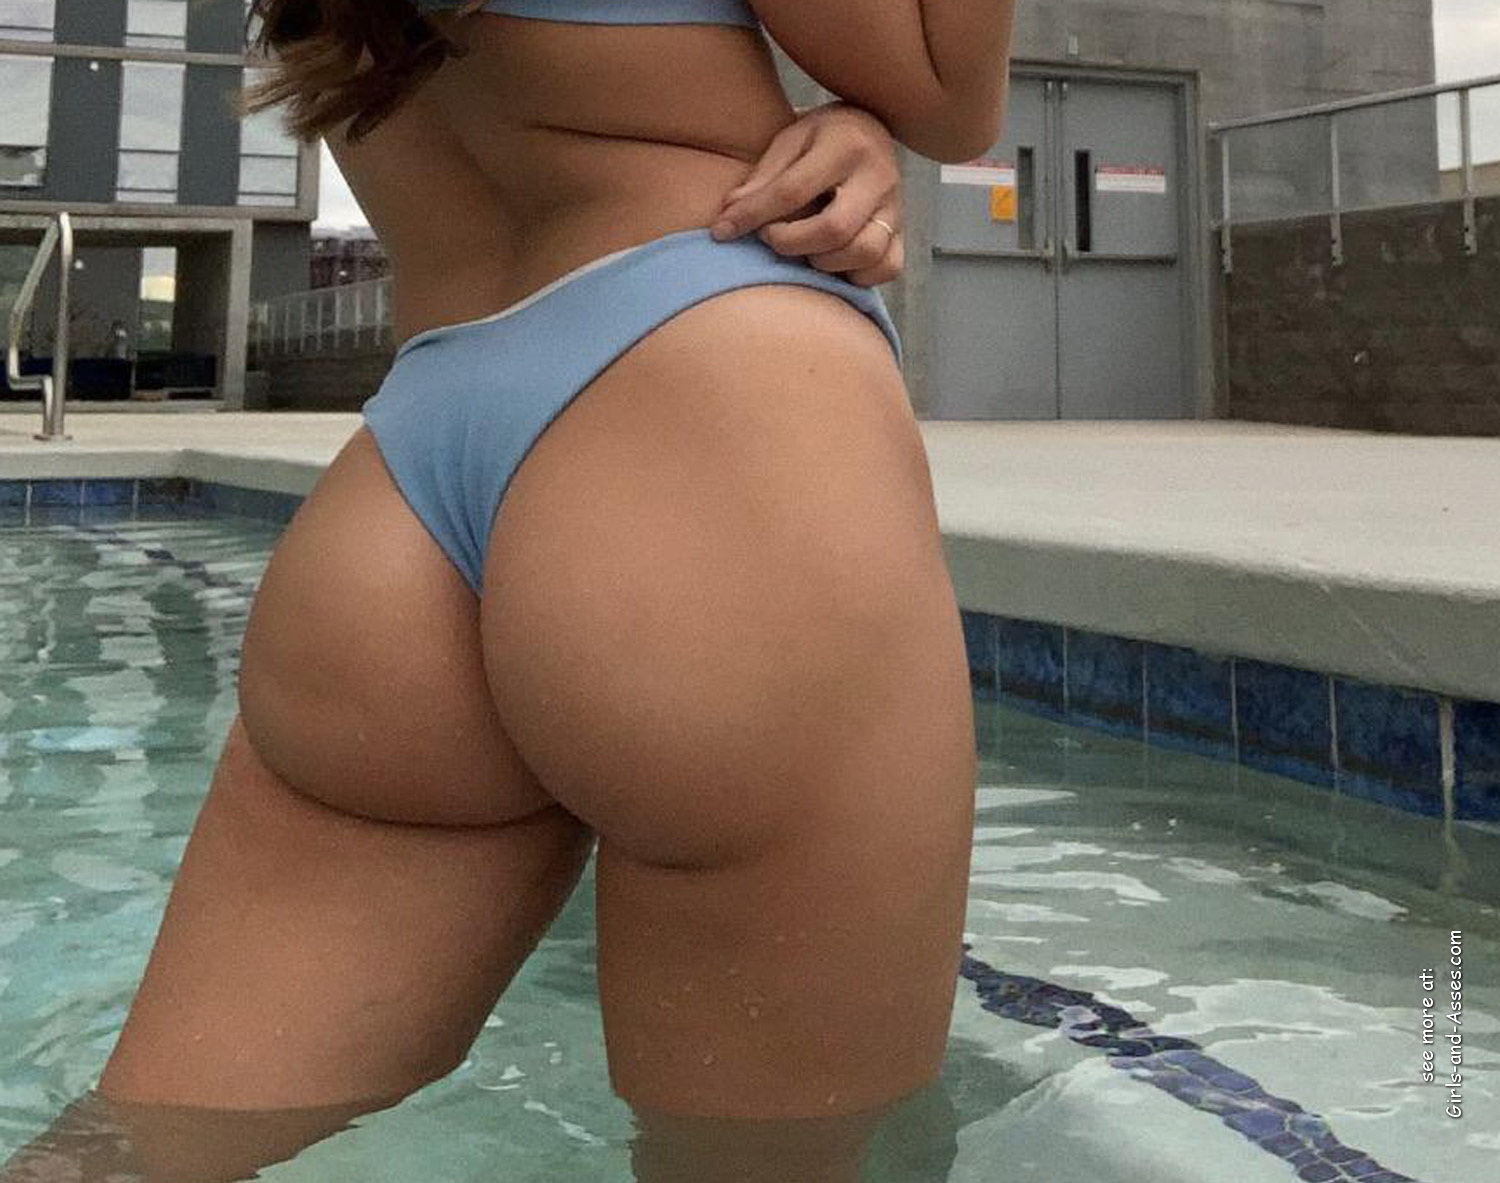 beautiful ass by the pool photo 00512